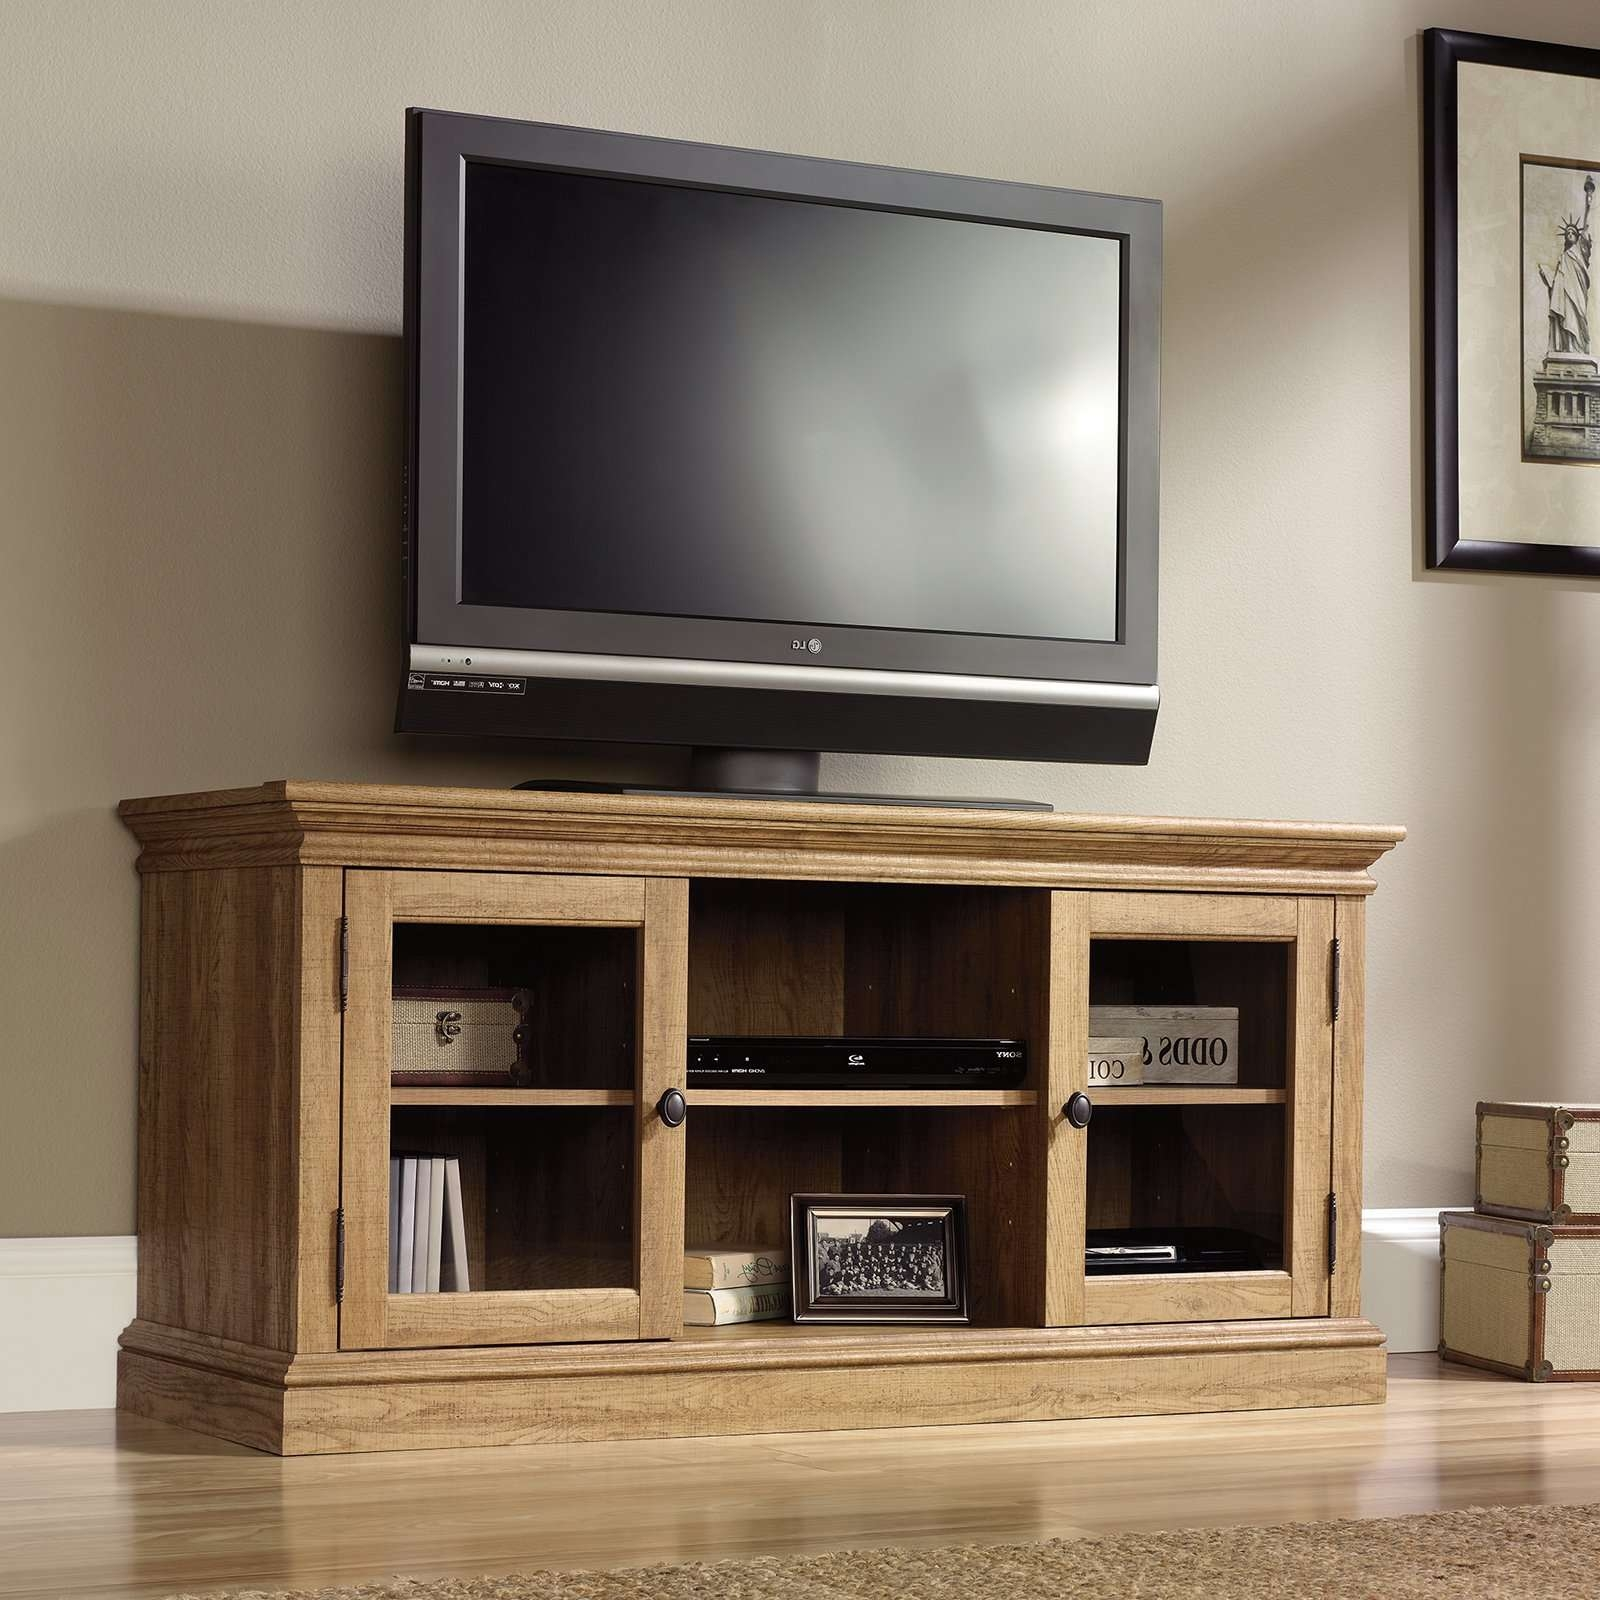 Innovative Designs Oak Tv Console | Marku Home Design Within Light Oak Tv Stands Flat Screen (View 8 of 15)